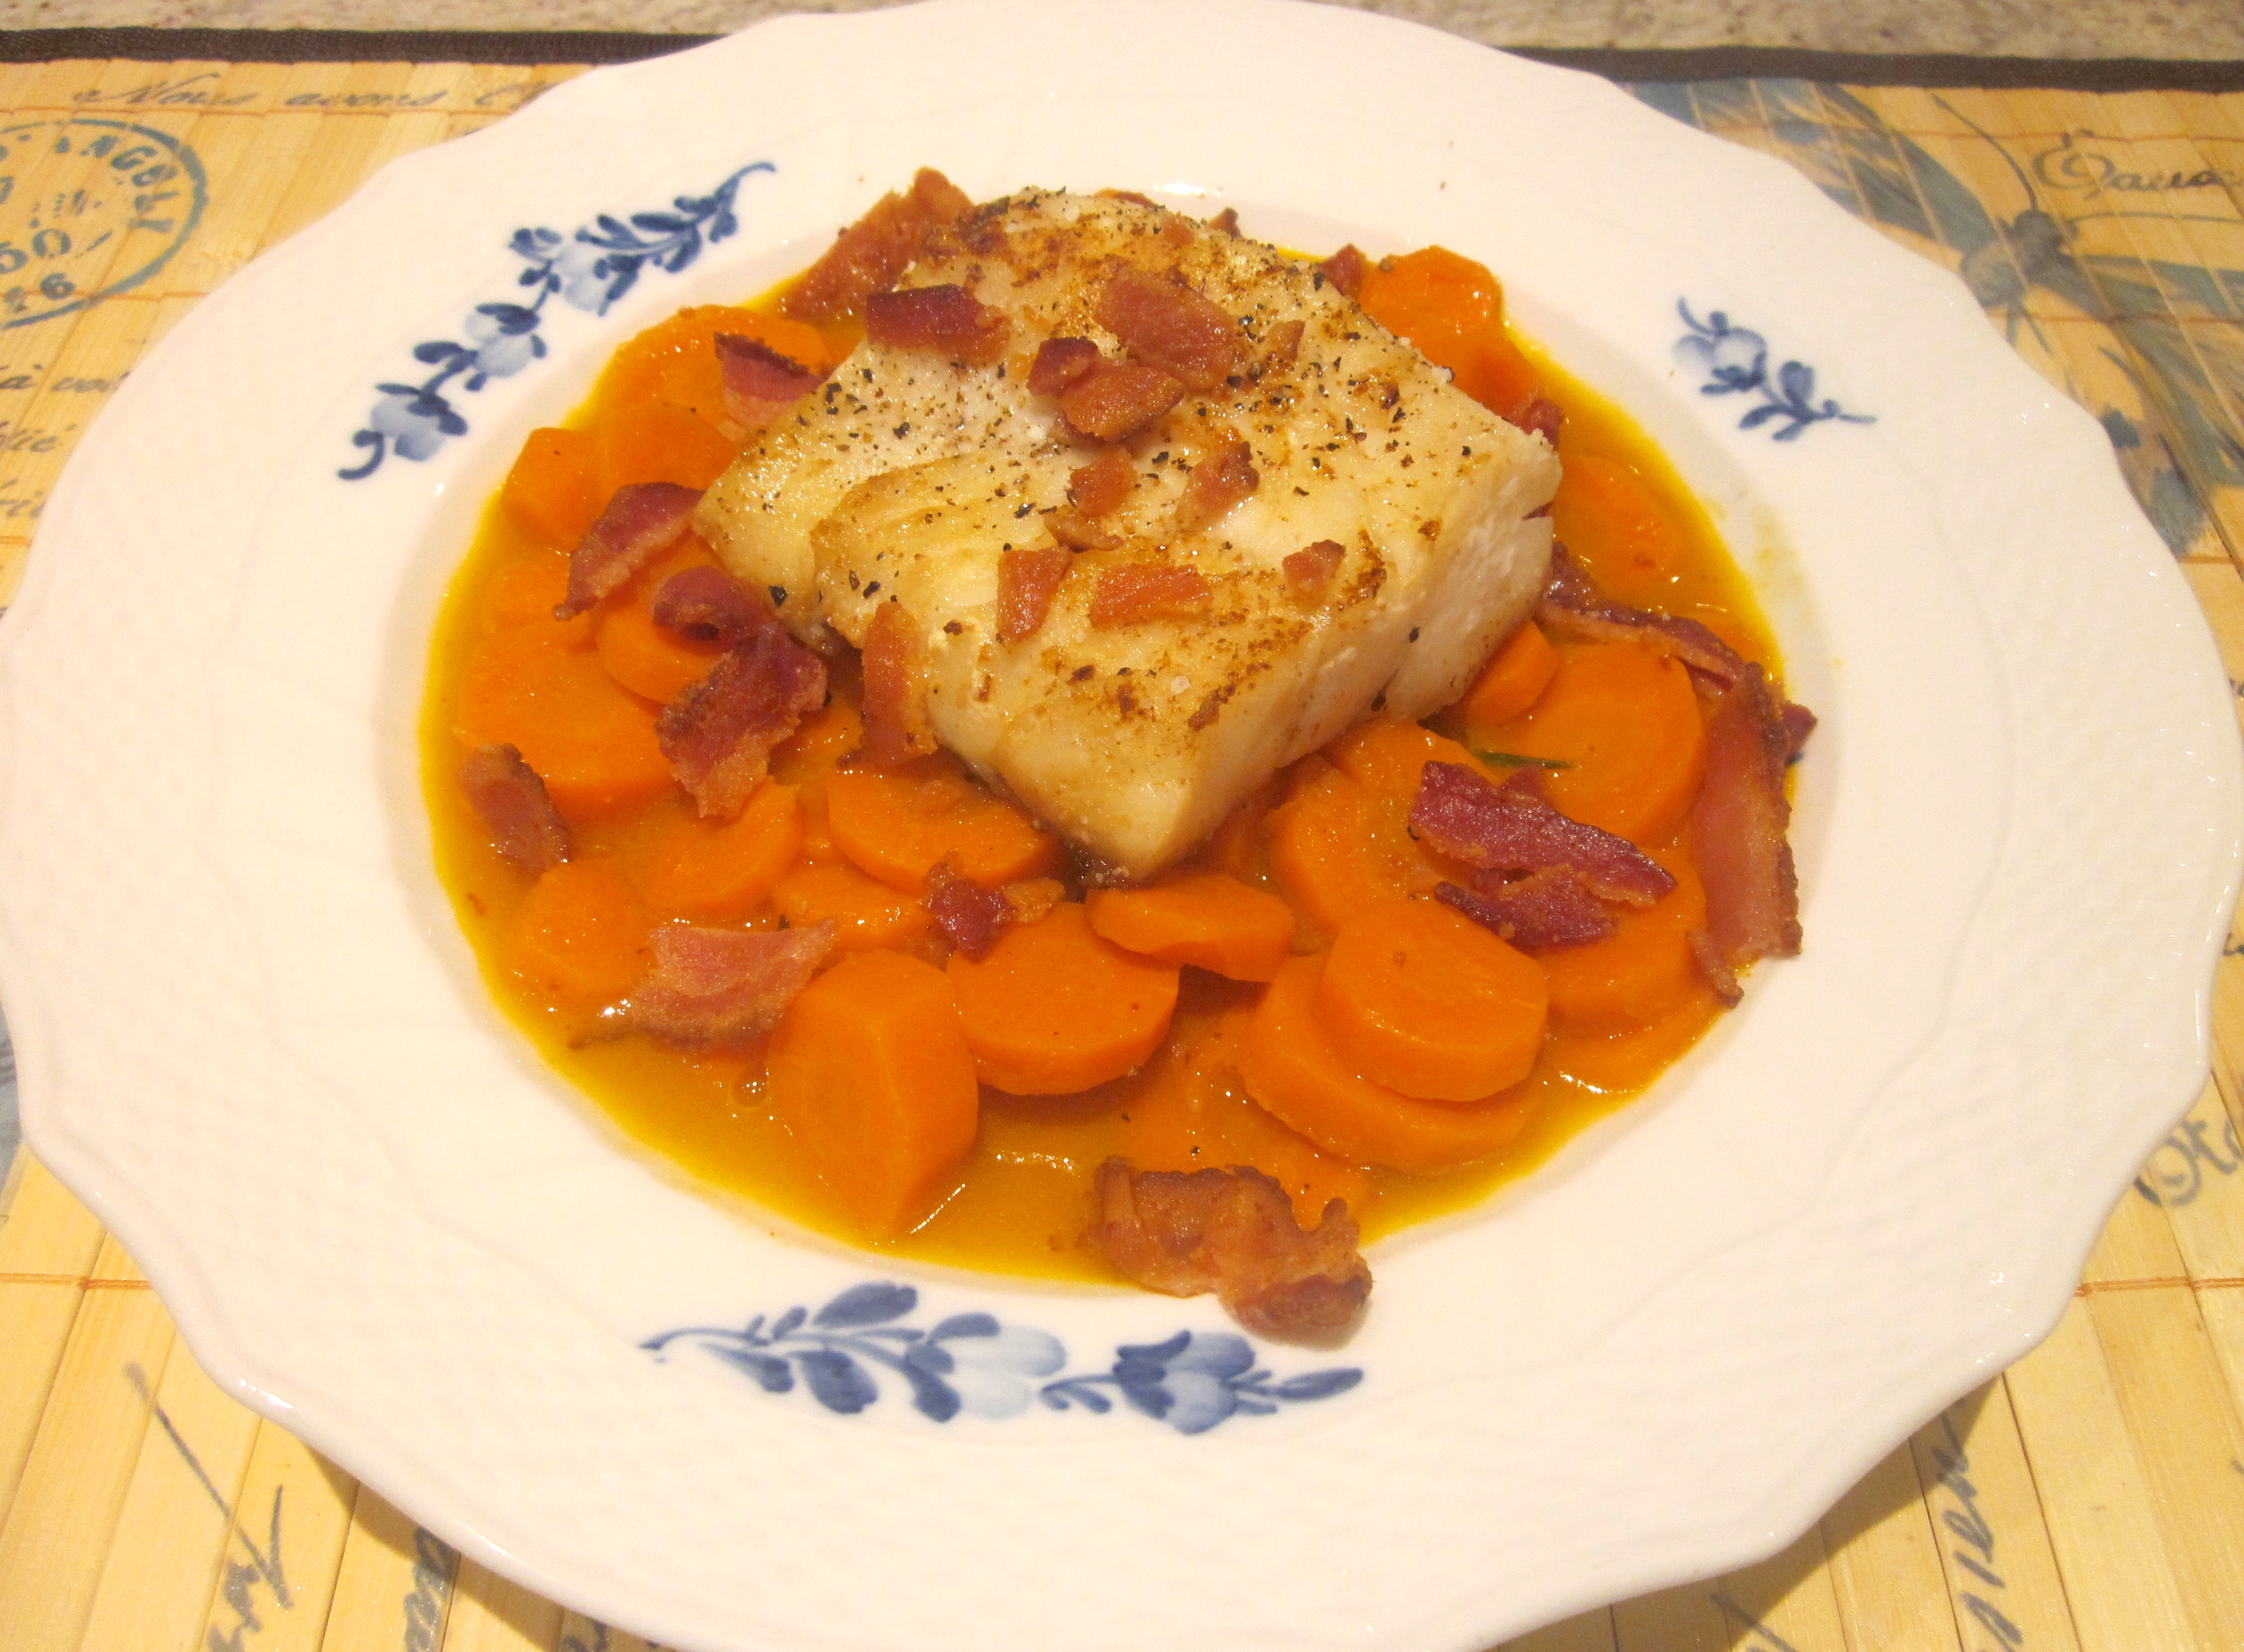 Pacific Cod with Double Carrots